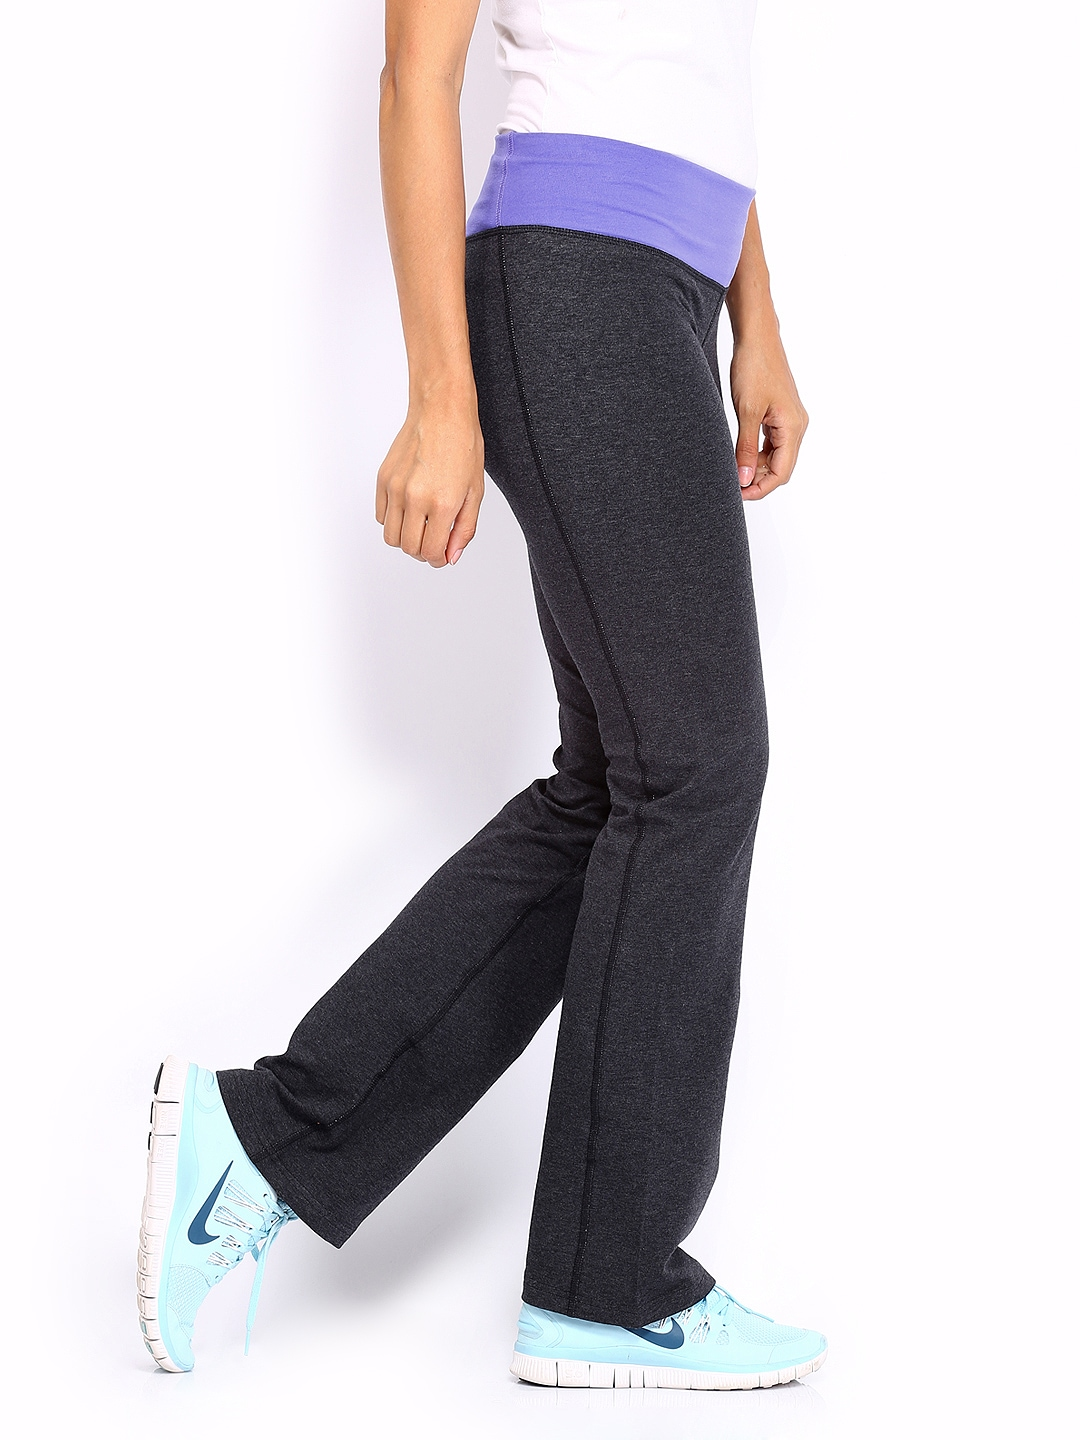 Awesome  Slim Fit Jogging Harem Pants  So I Would Like To Bring A Story To